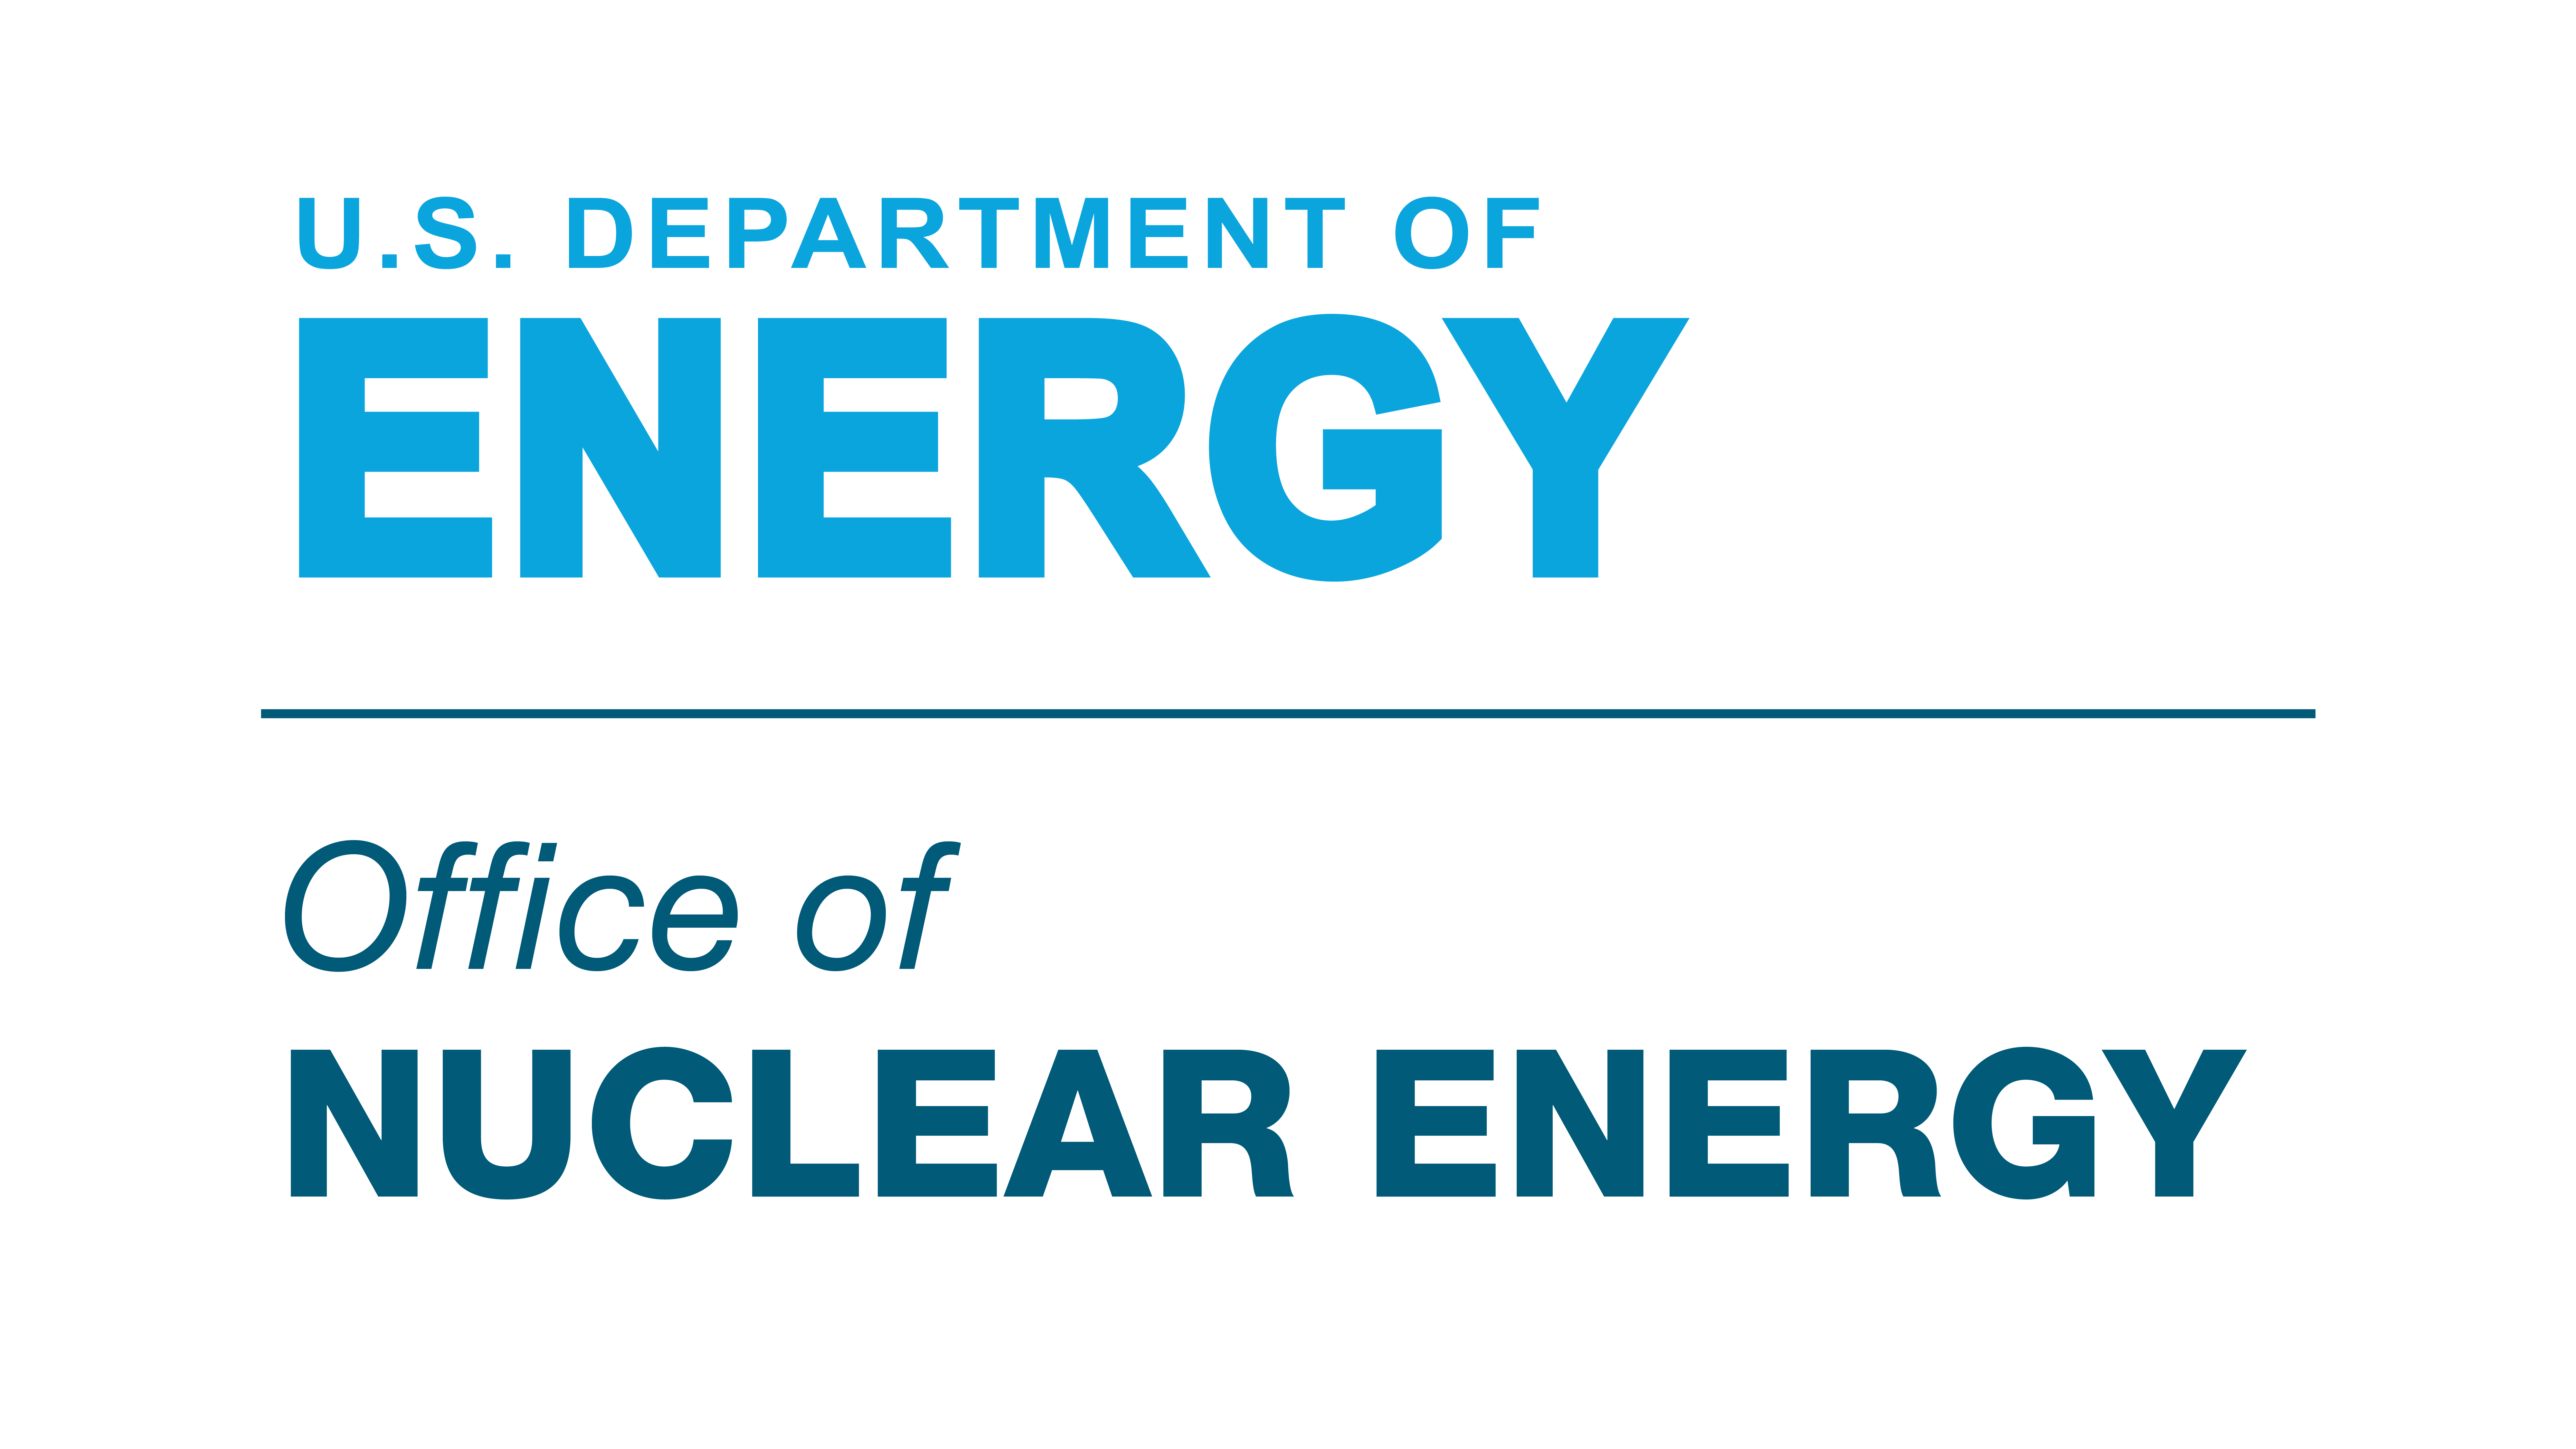 U.S. Department of Energy Office of Nuclear Energy